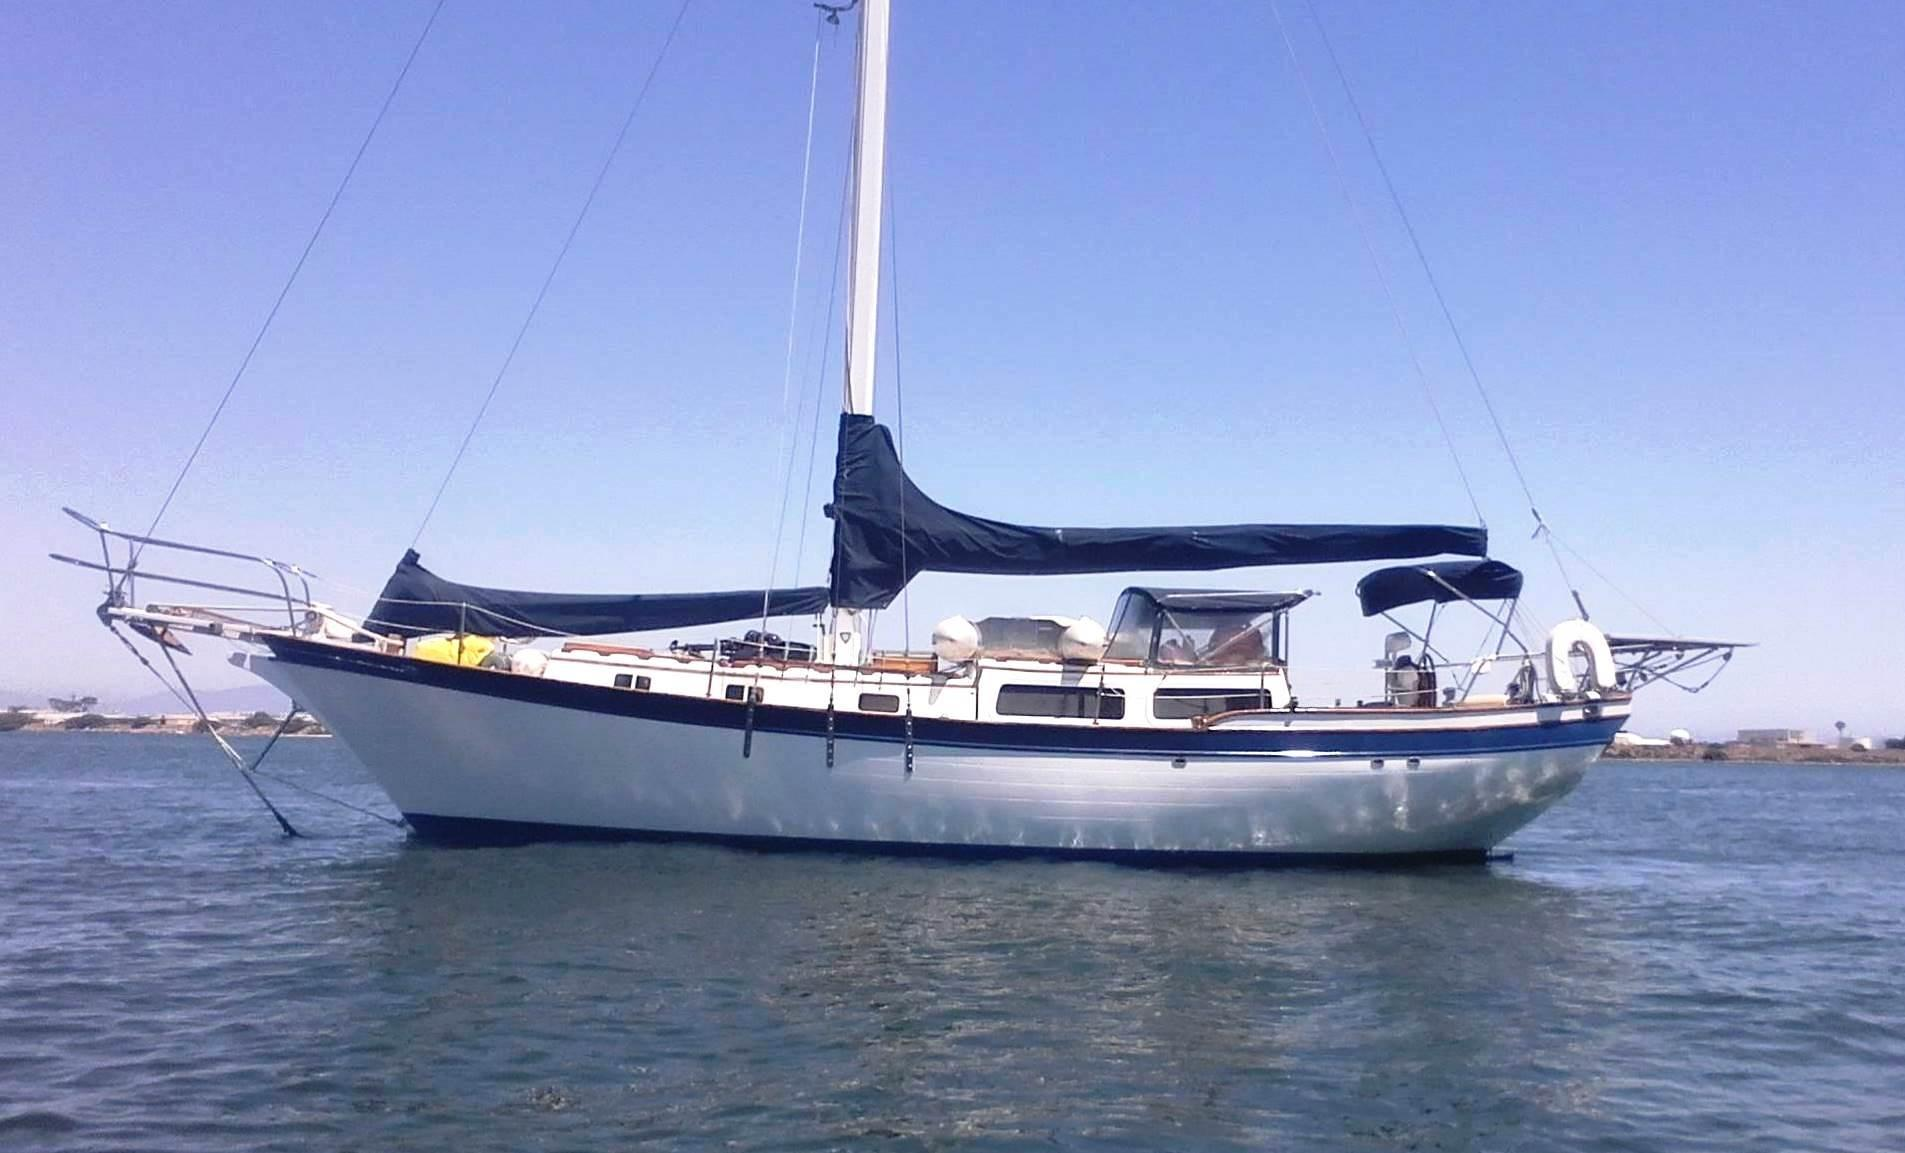 1979 Downeaster 38 Sail Boat For Sale Wwwyachtworldcom